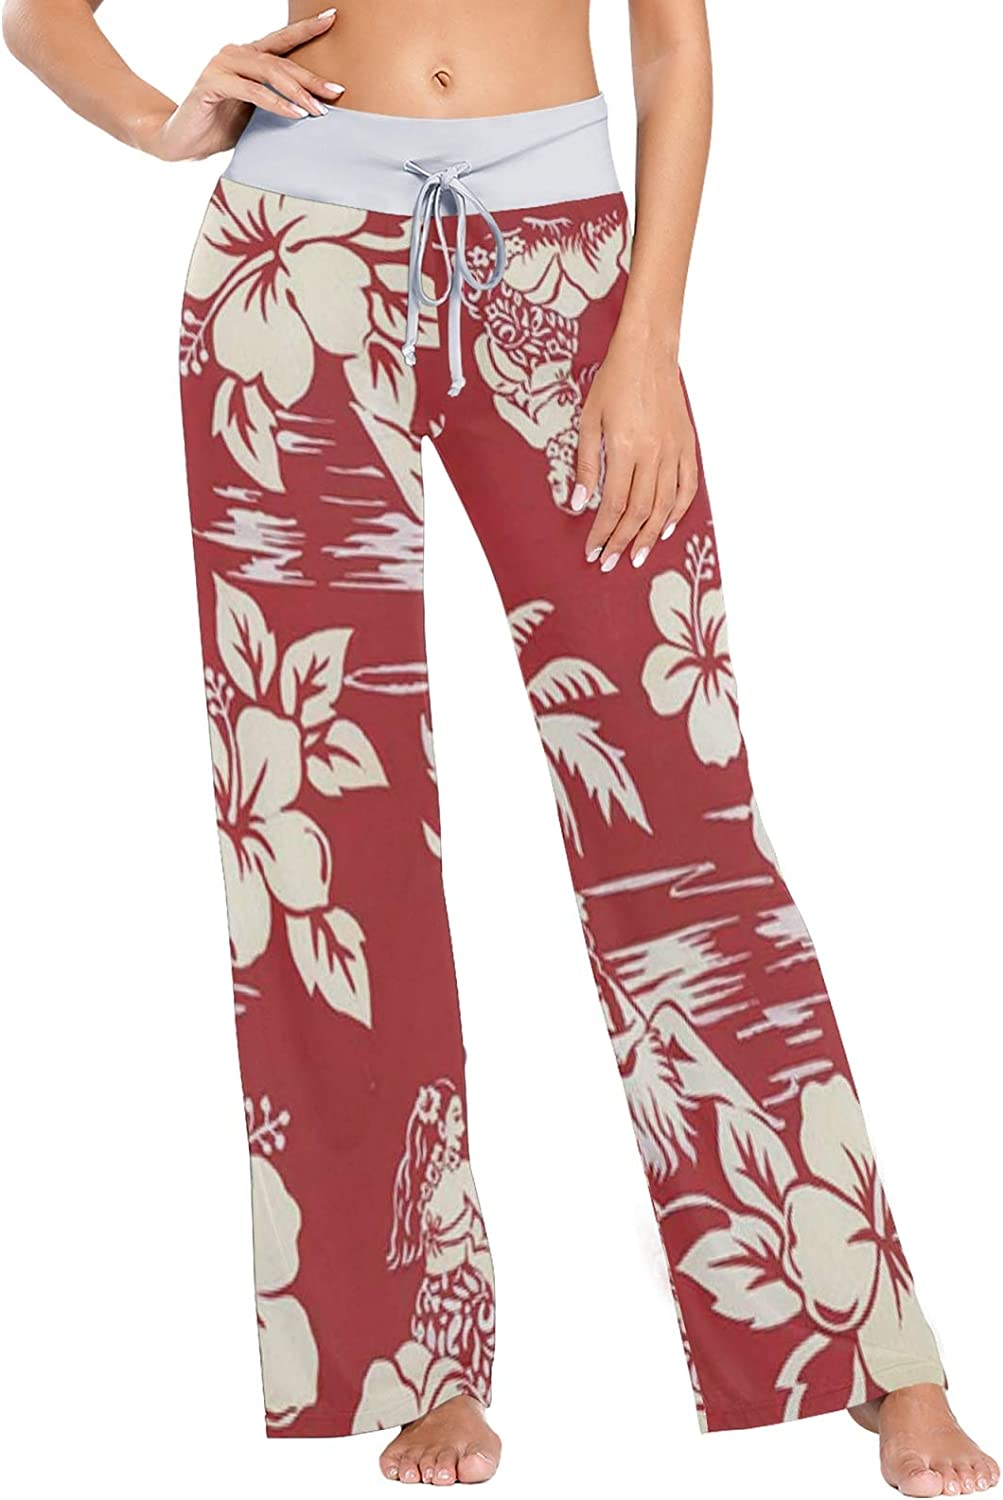 MSACRH Pajama Pants for Women Outlet sale feature Outlet sale feature Red Flowers Sleepwear Wide